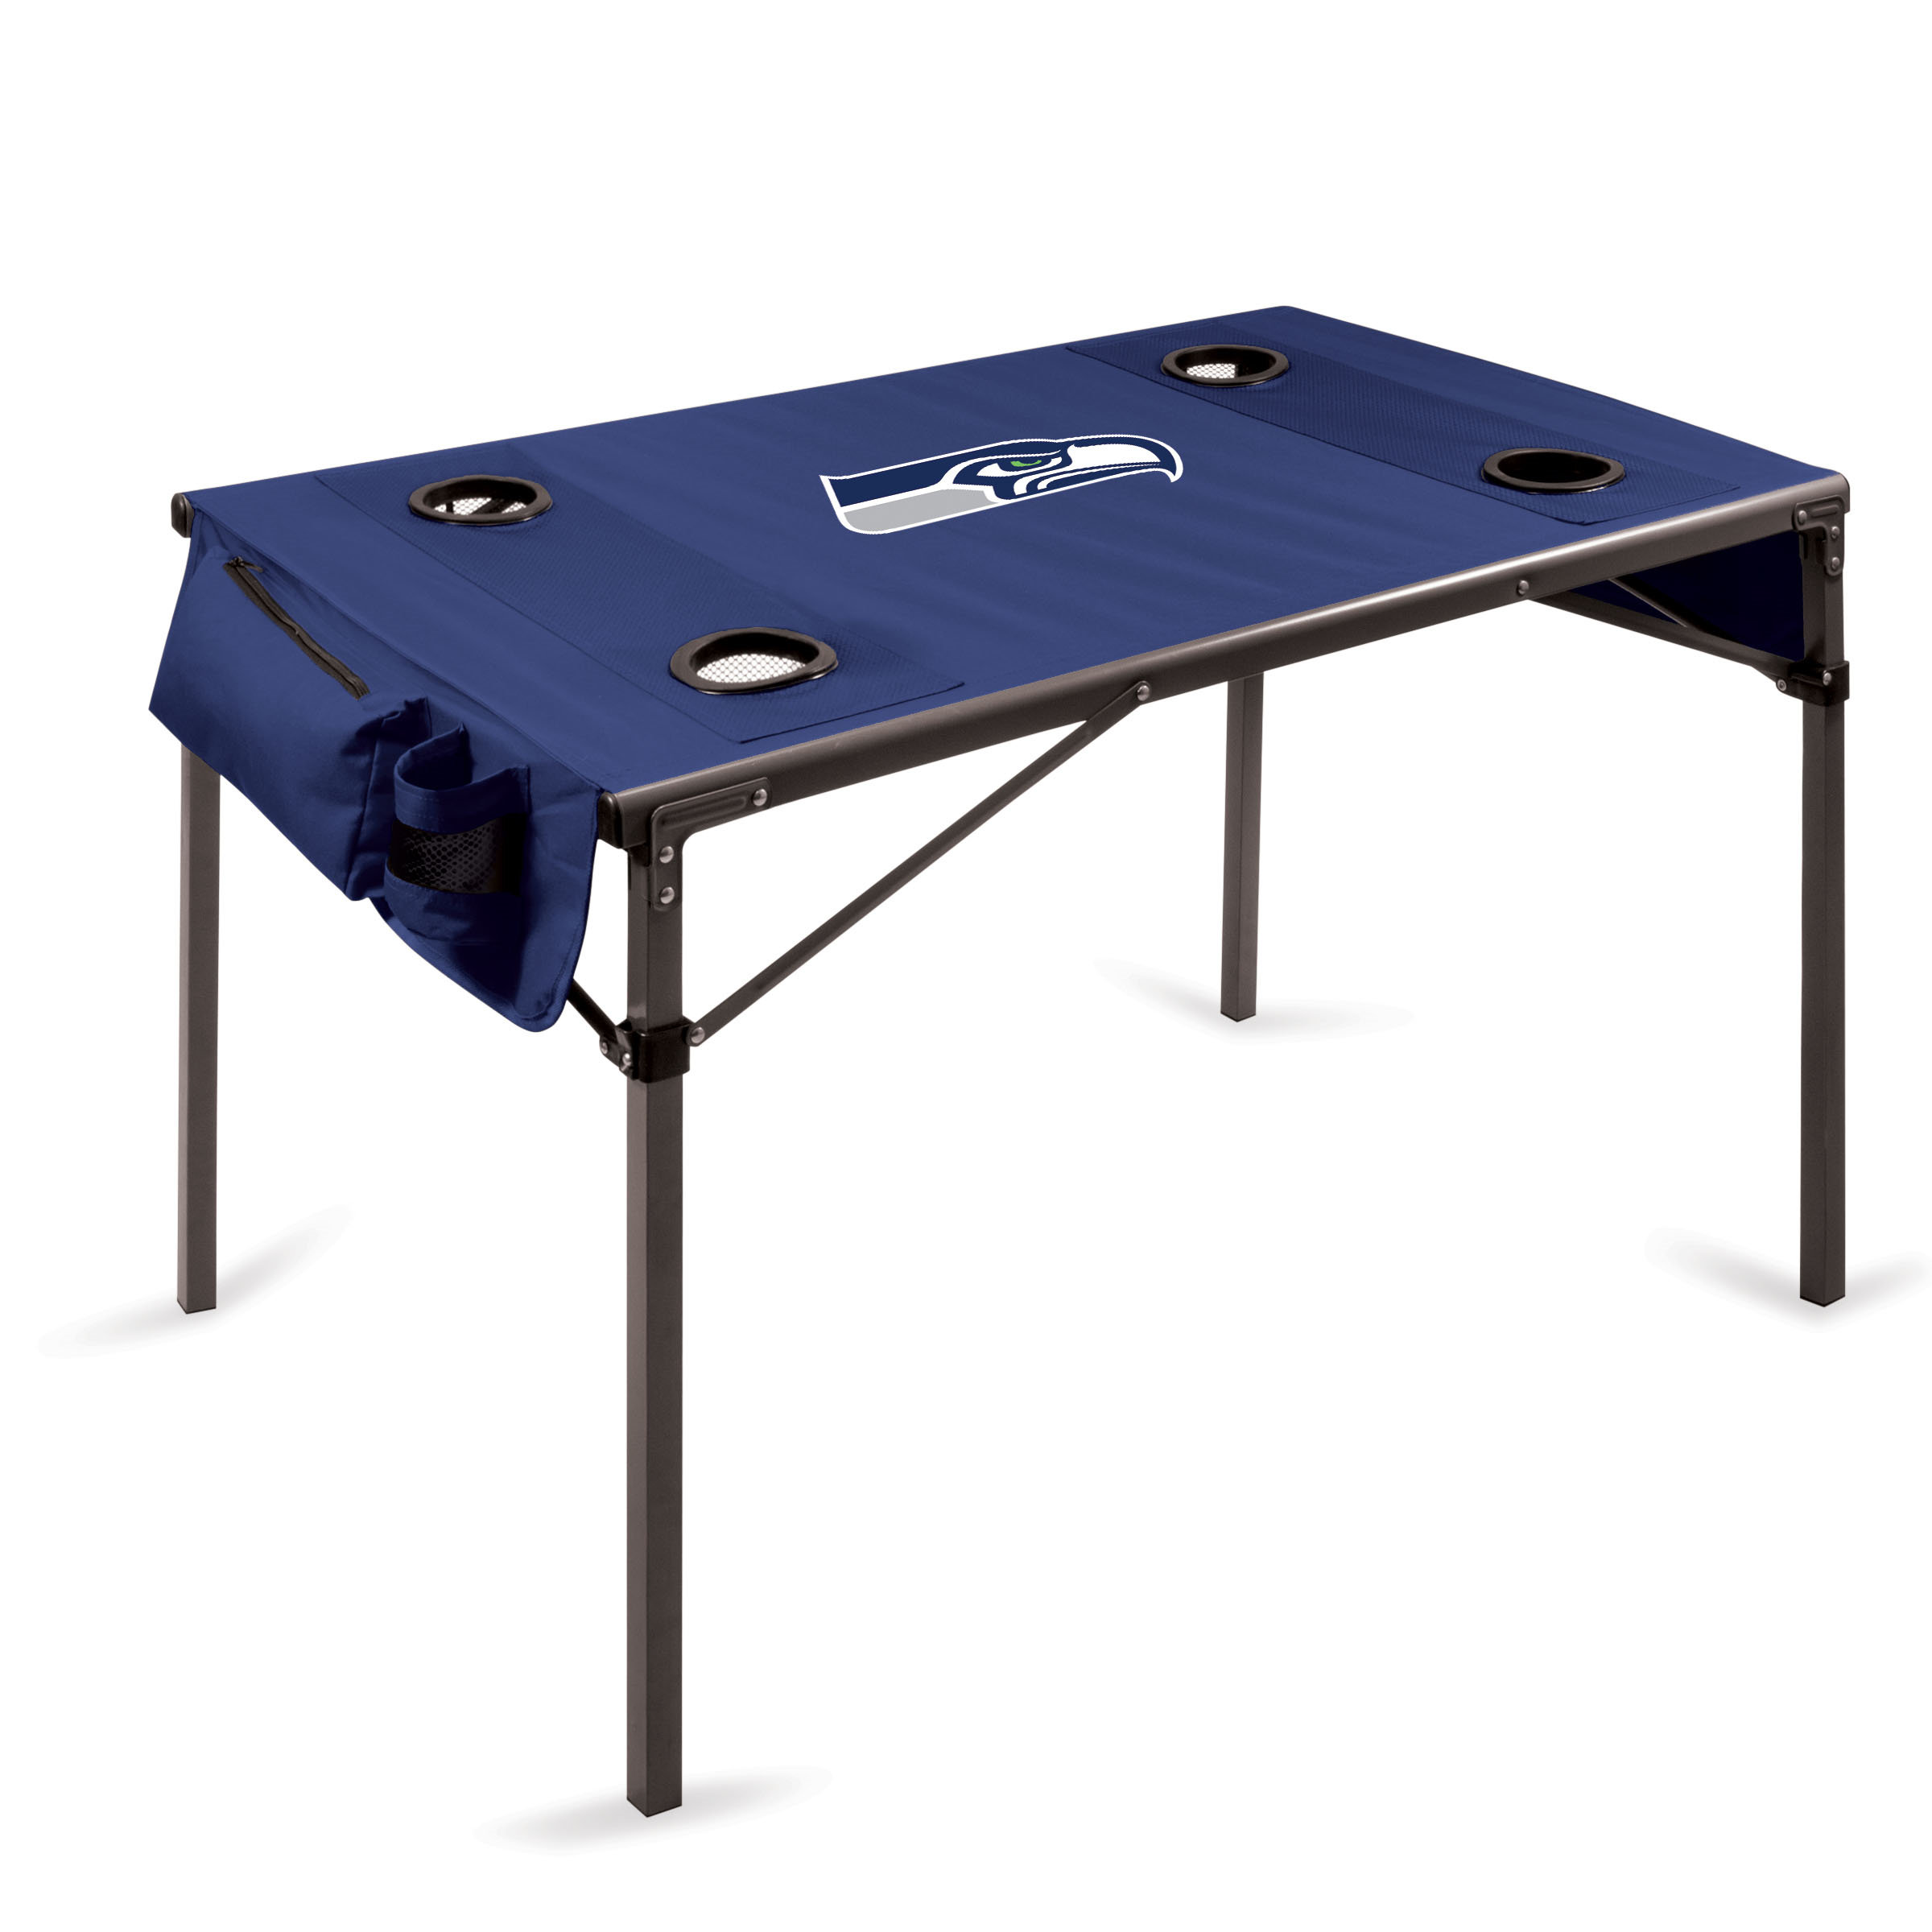 Picnic Time Nfl Travel Table Seattle Seahawks